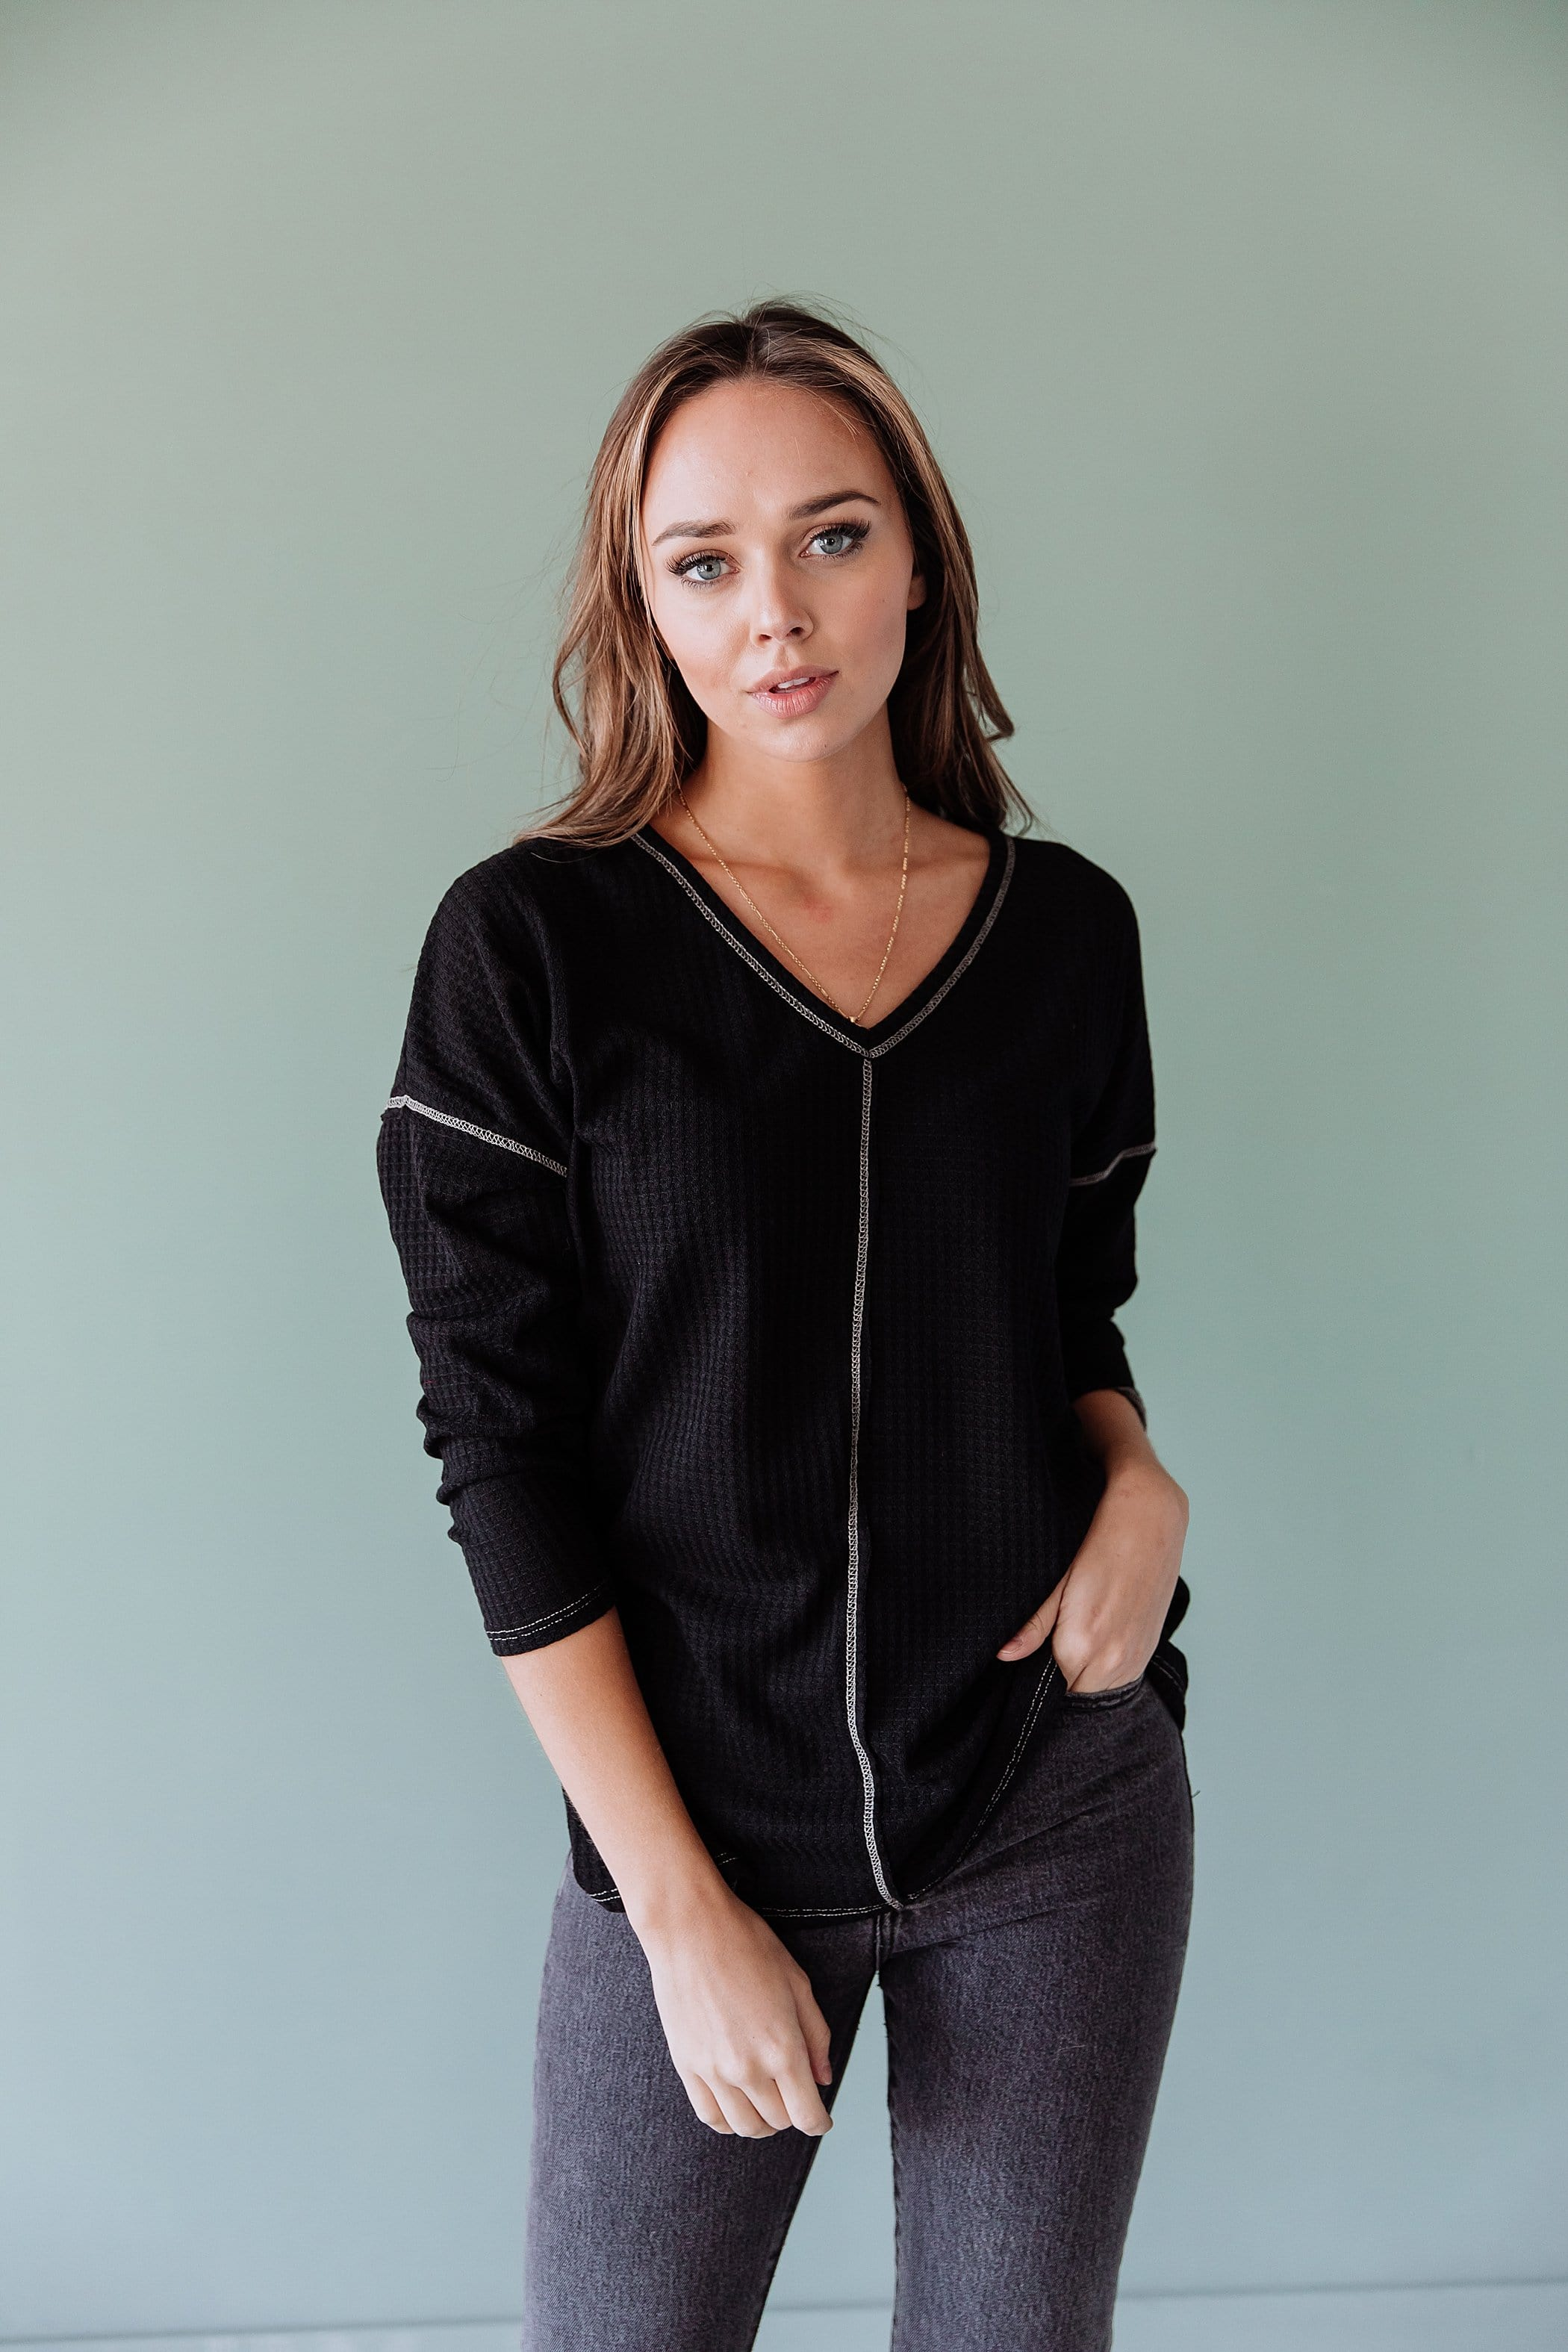 The Lola Waffle Top in Black and Charcoal